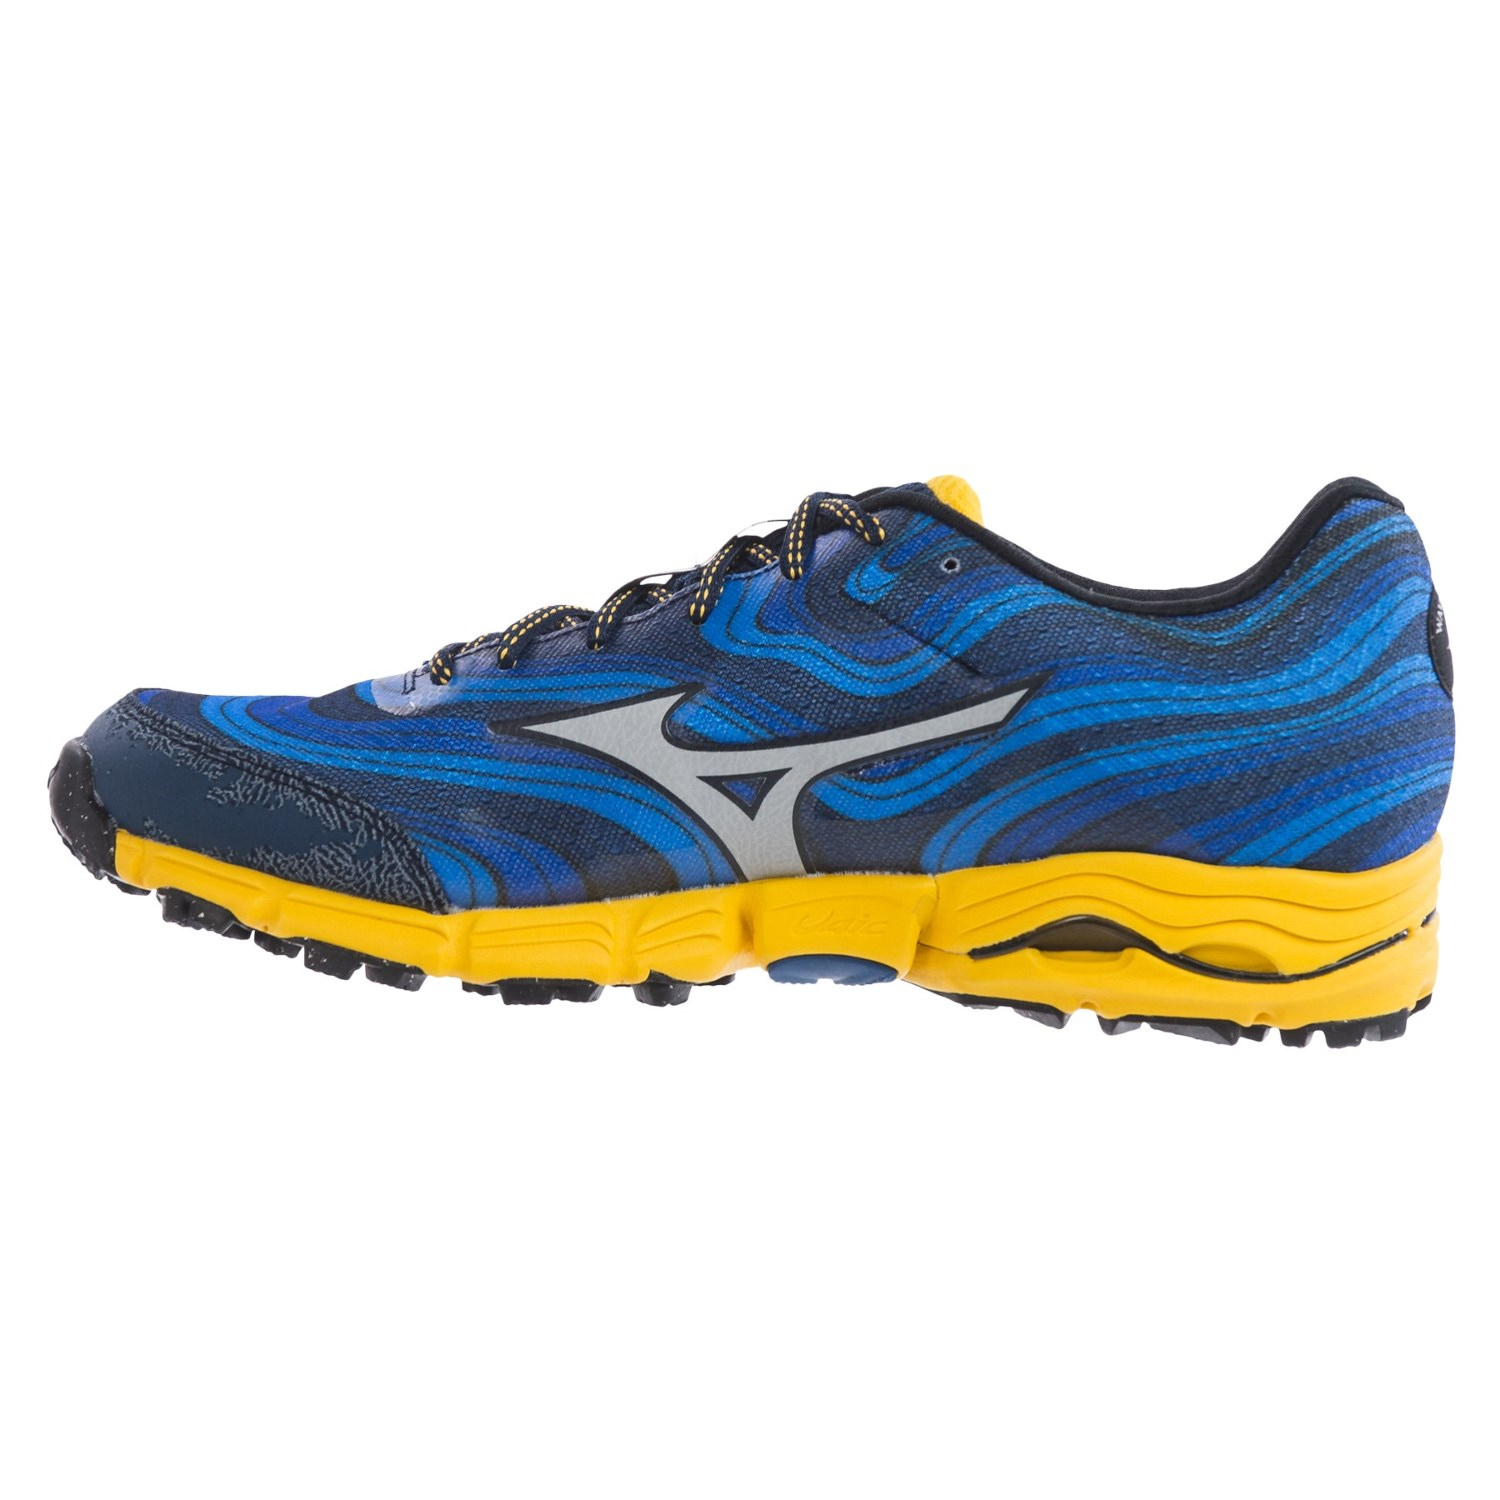 pics Mizuno Wave Ascend 8 Trail Running Shoe Review